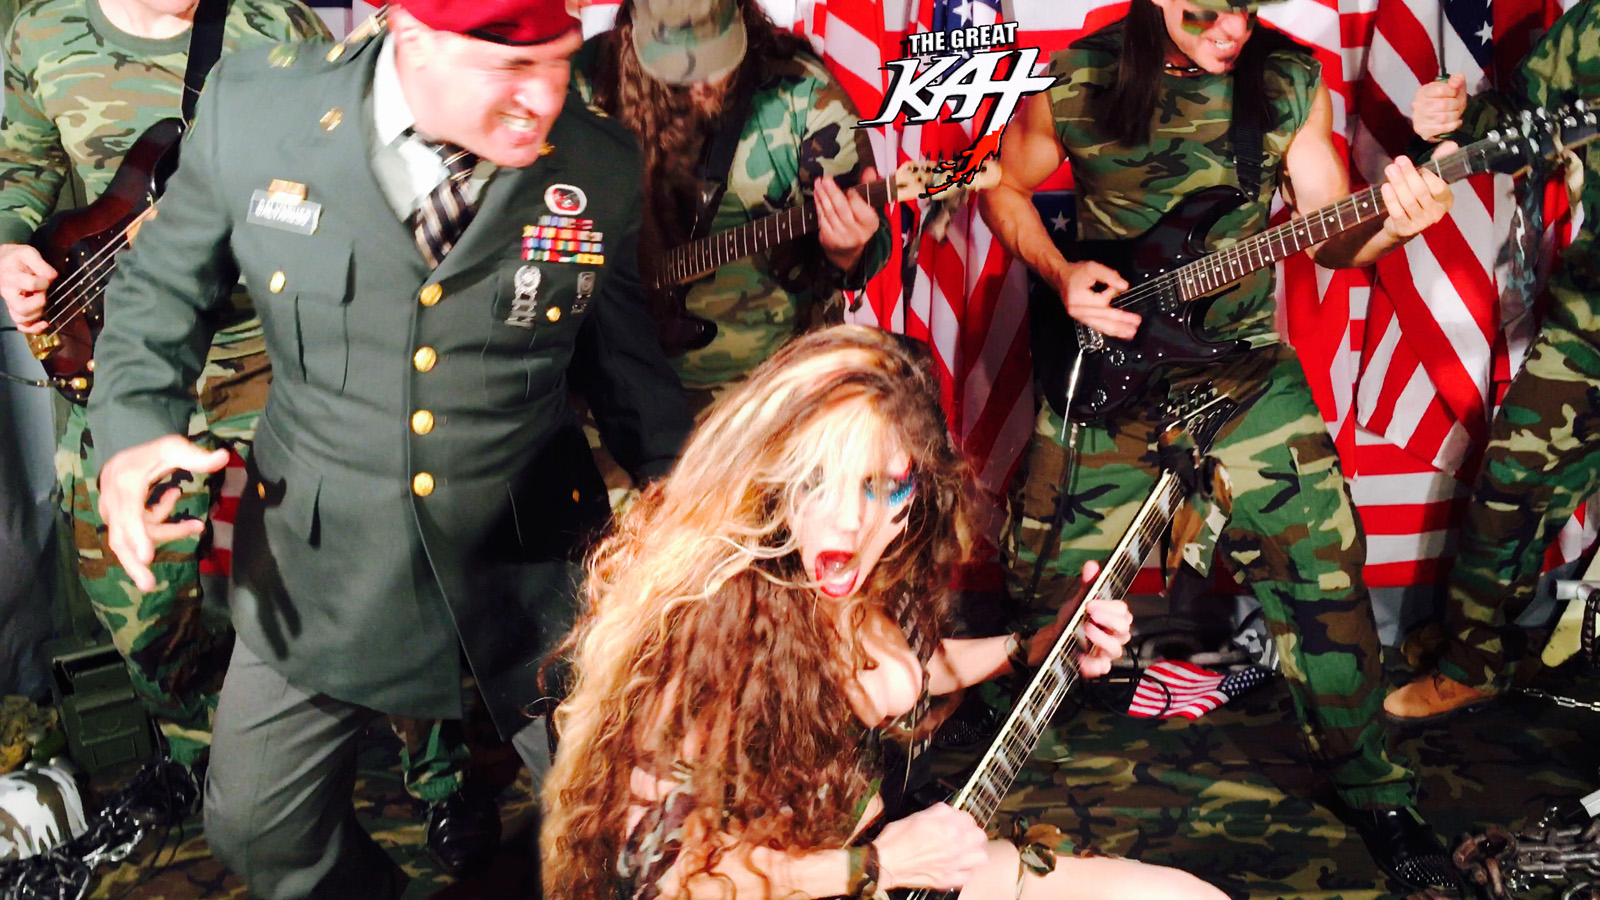 """HOT SHRED GODDESS DOMINATES HER ALL-MALE STUD ARMY at NEW """"TERROR"""" GREAT KAT MUSIC VIDEO SHOOT!!"""